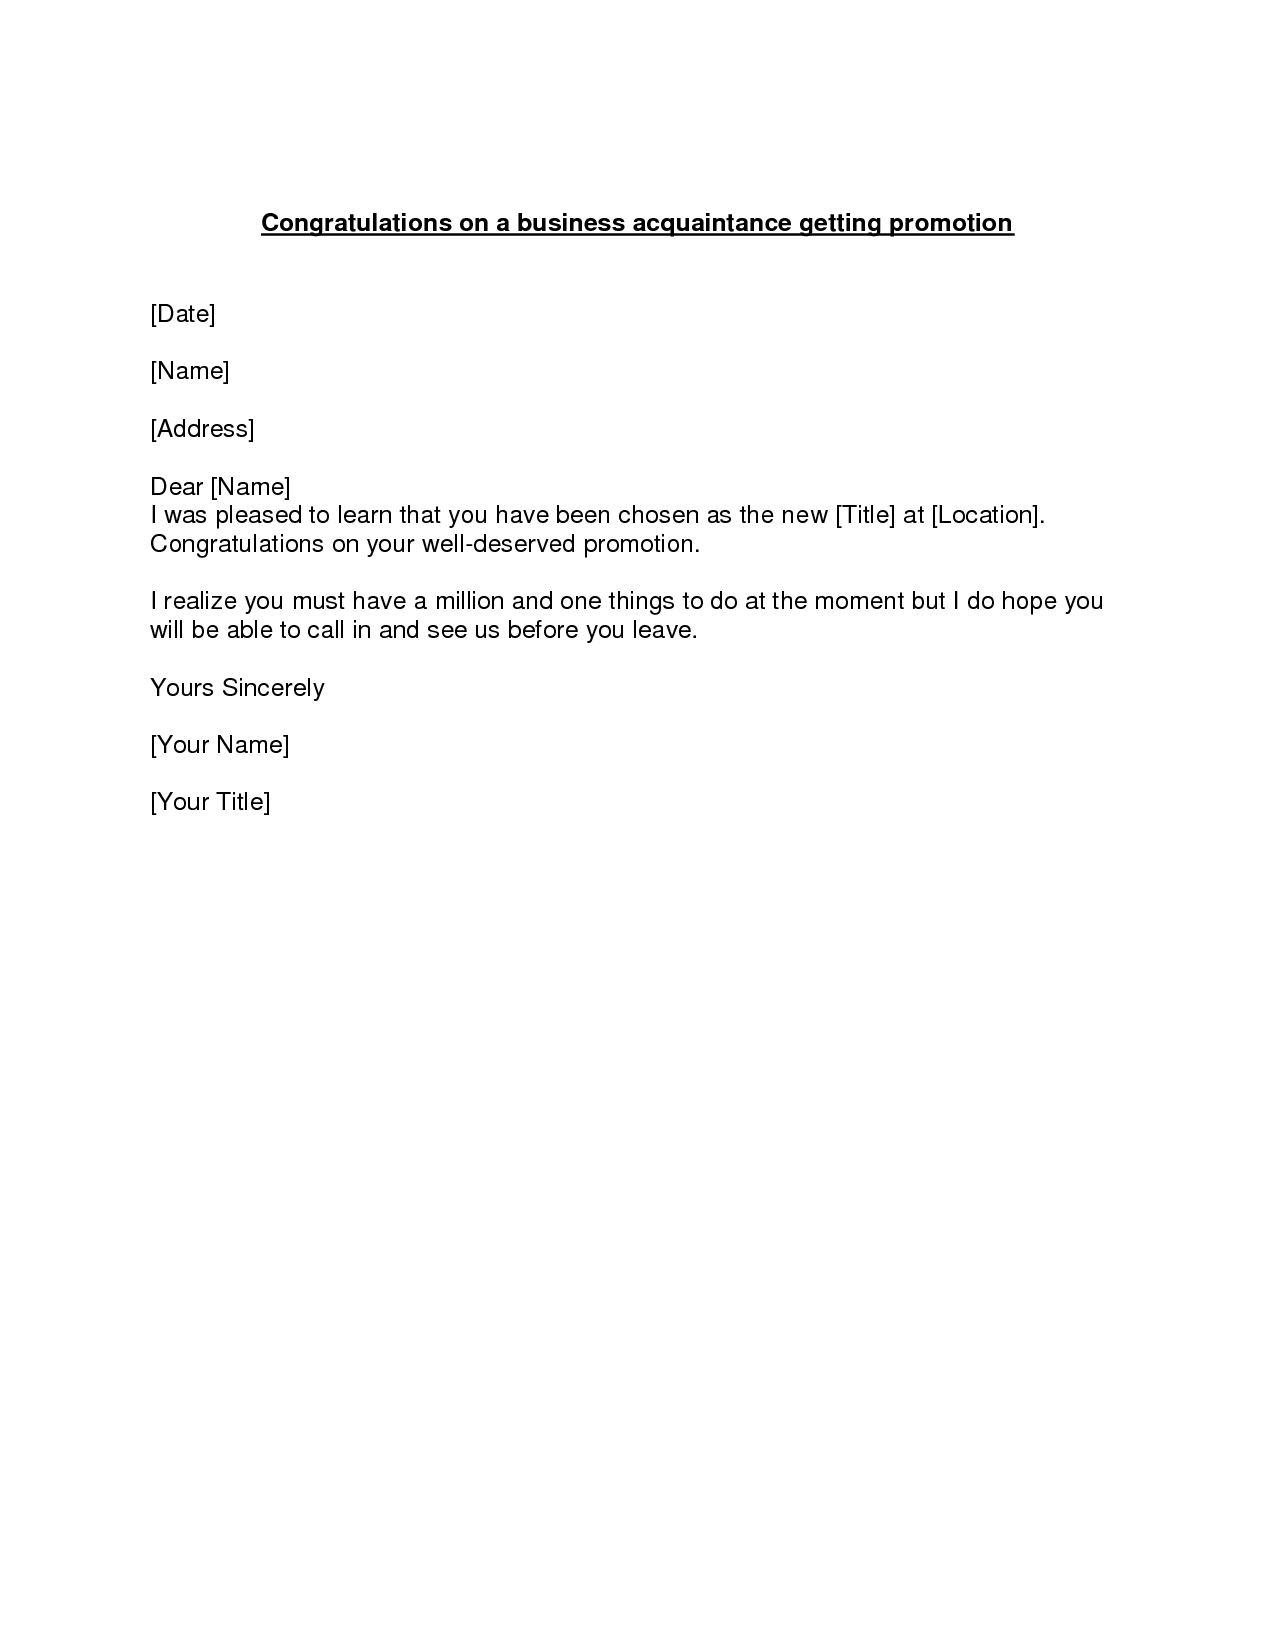 Promotion congratulations letter - Example of a congratulations ...